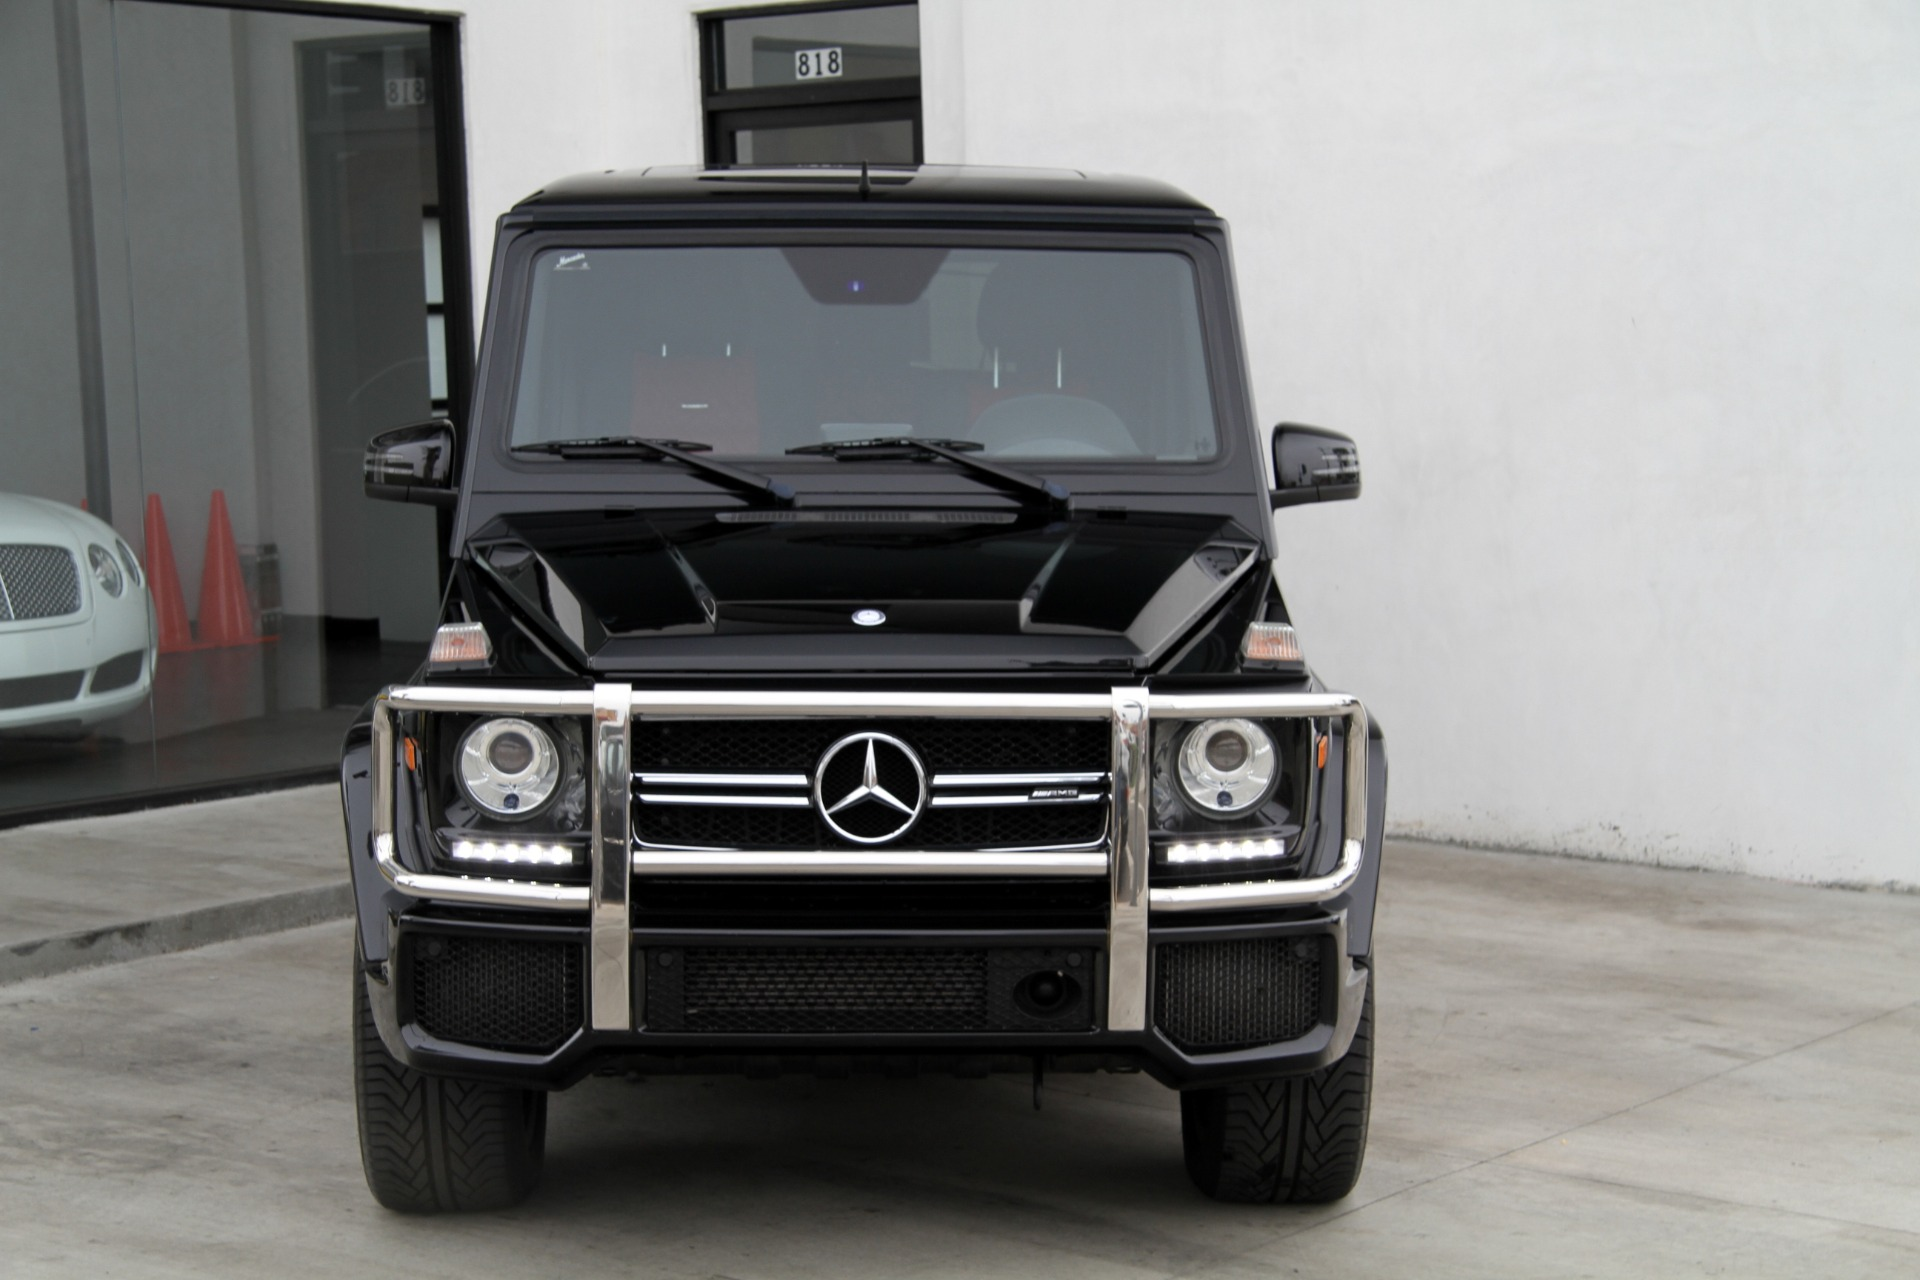 2015 mercedes benz g63 amg 4matic diamond stitched seats g 63 amg stock 5854 for sale. Black Bedroom Furniture Sets. Home Design Ideas